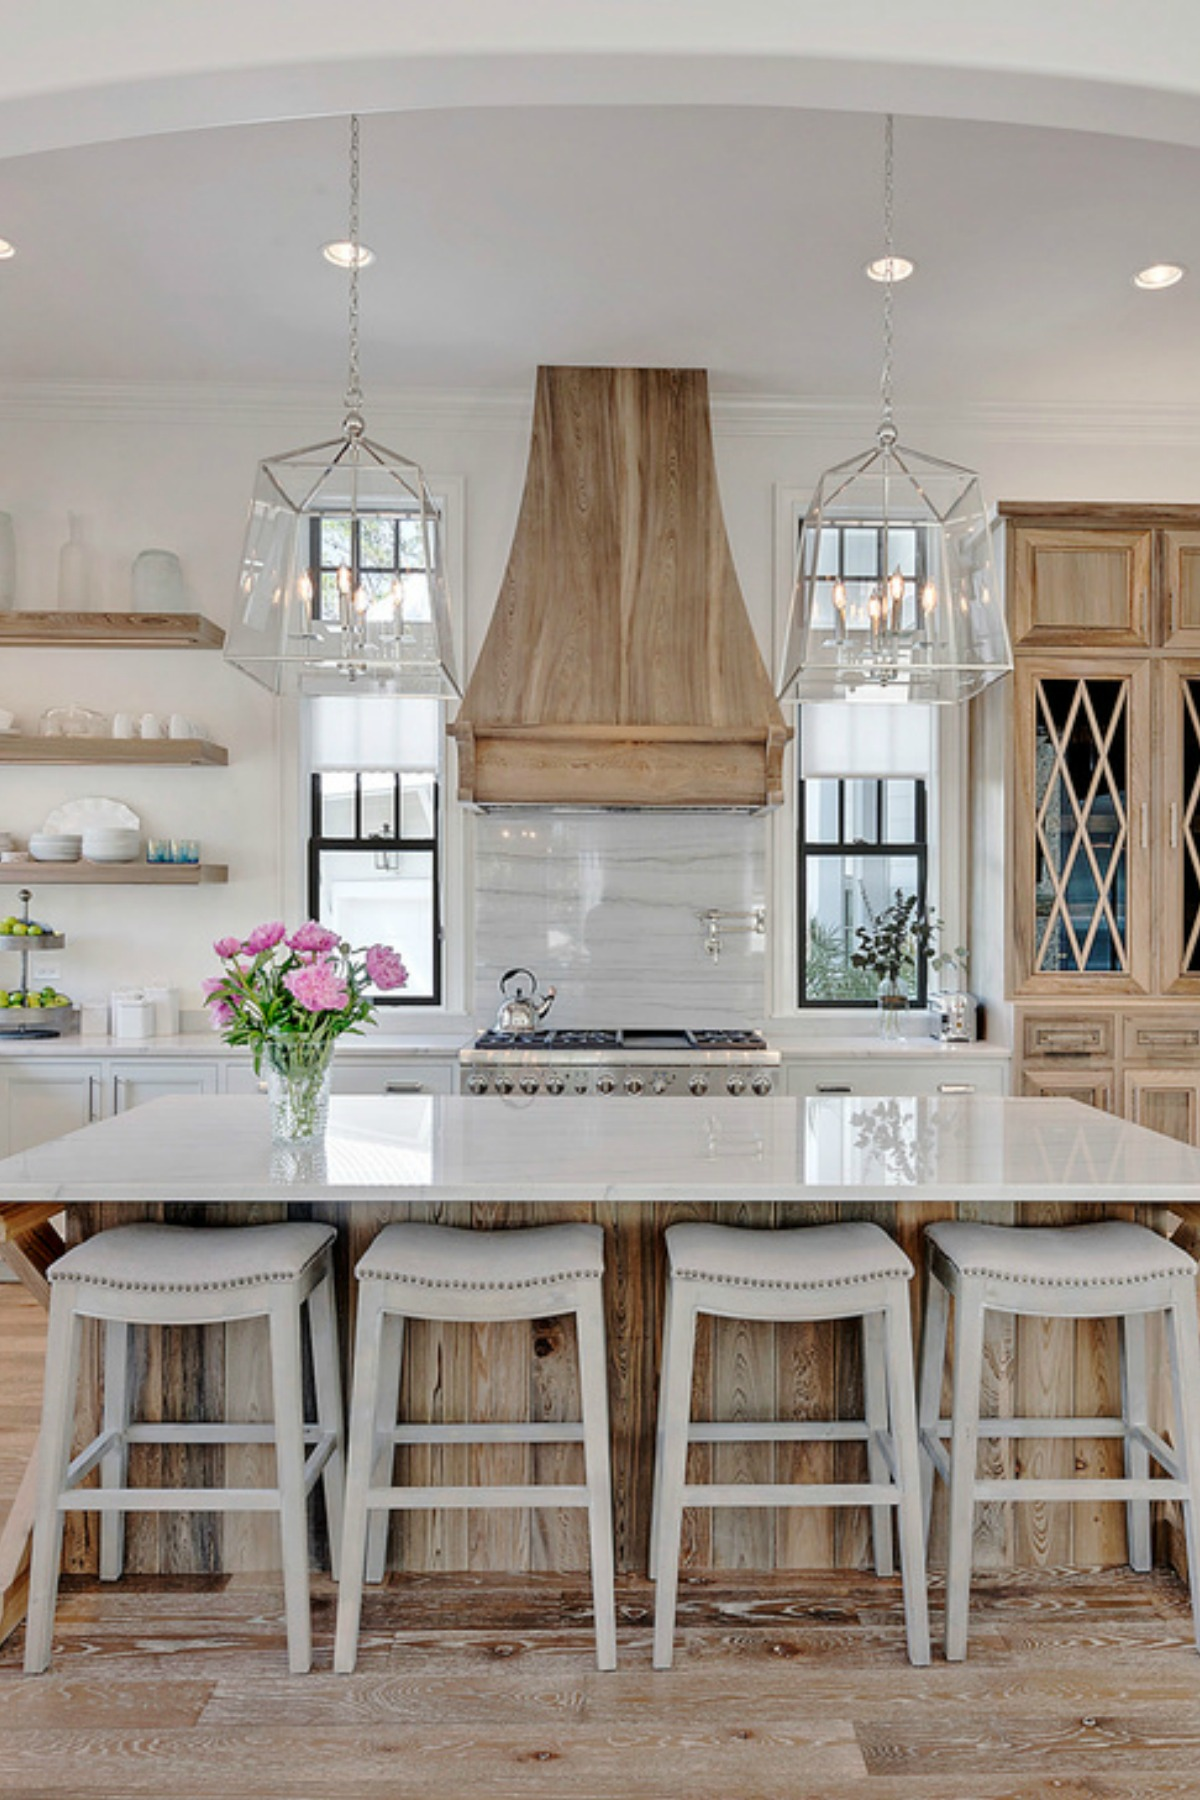 Farm House Kitchens: 7 Elements Of The Best Farmhouse Kitchens